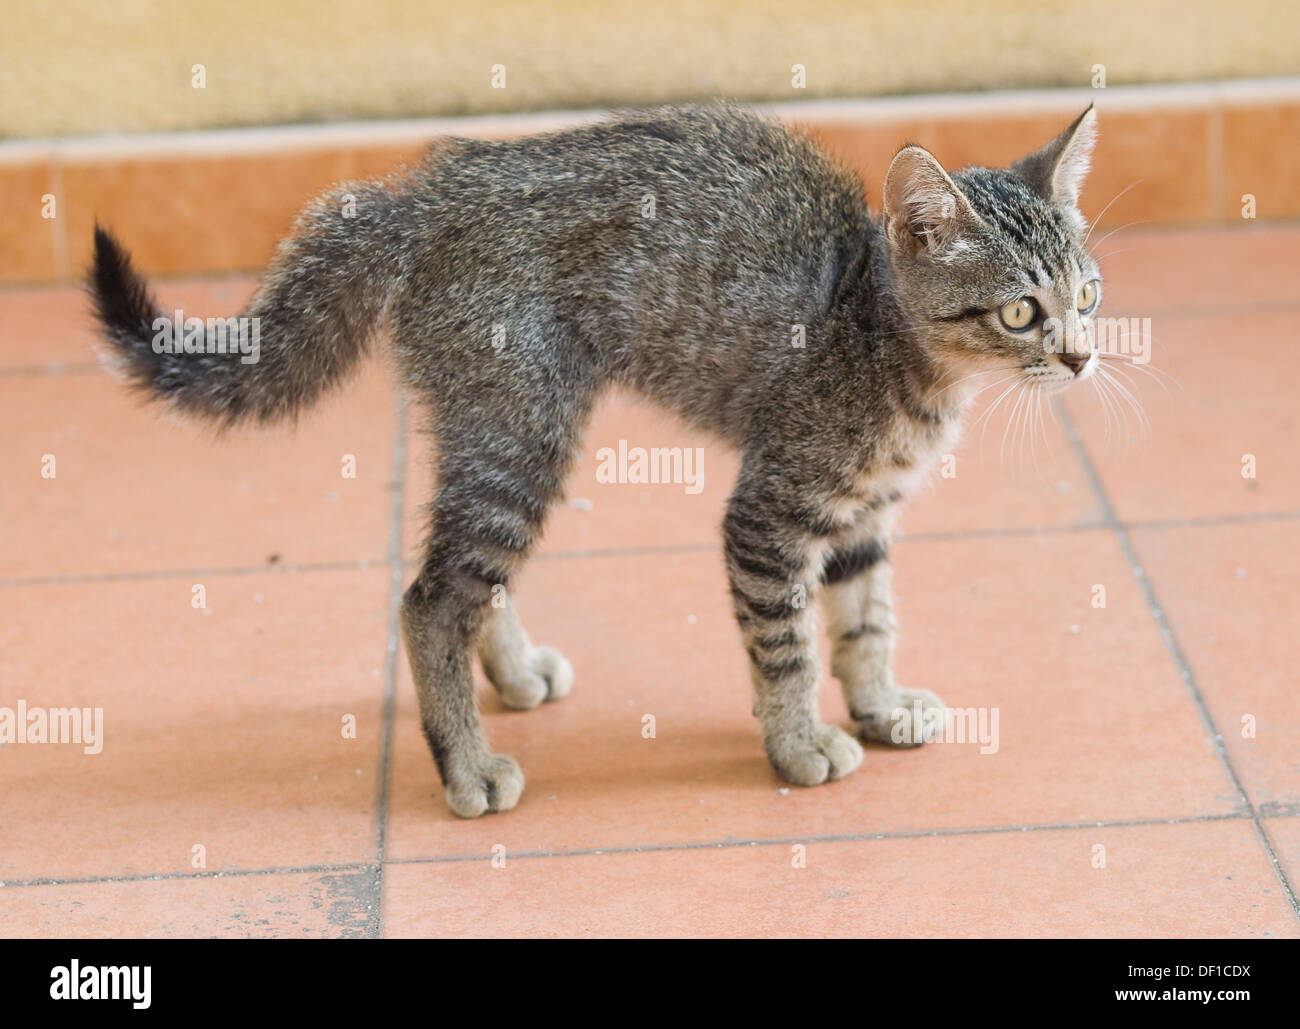 A frightened kitten and bristling on a tile background - Stock Image